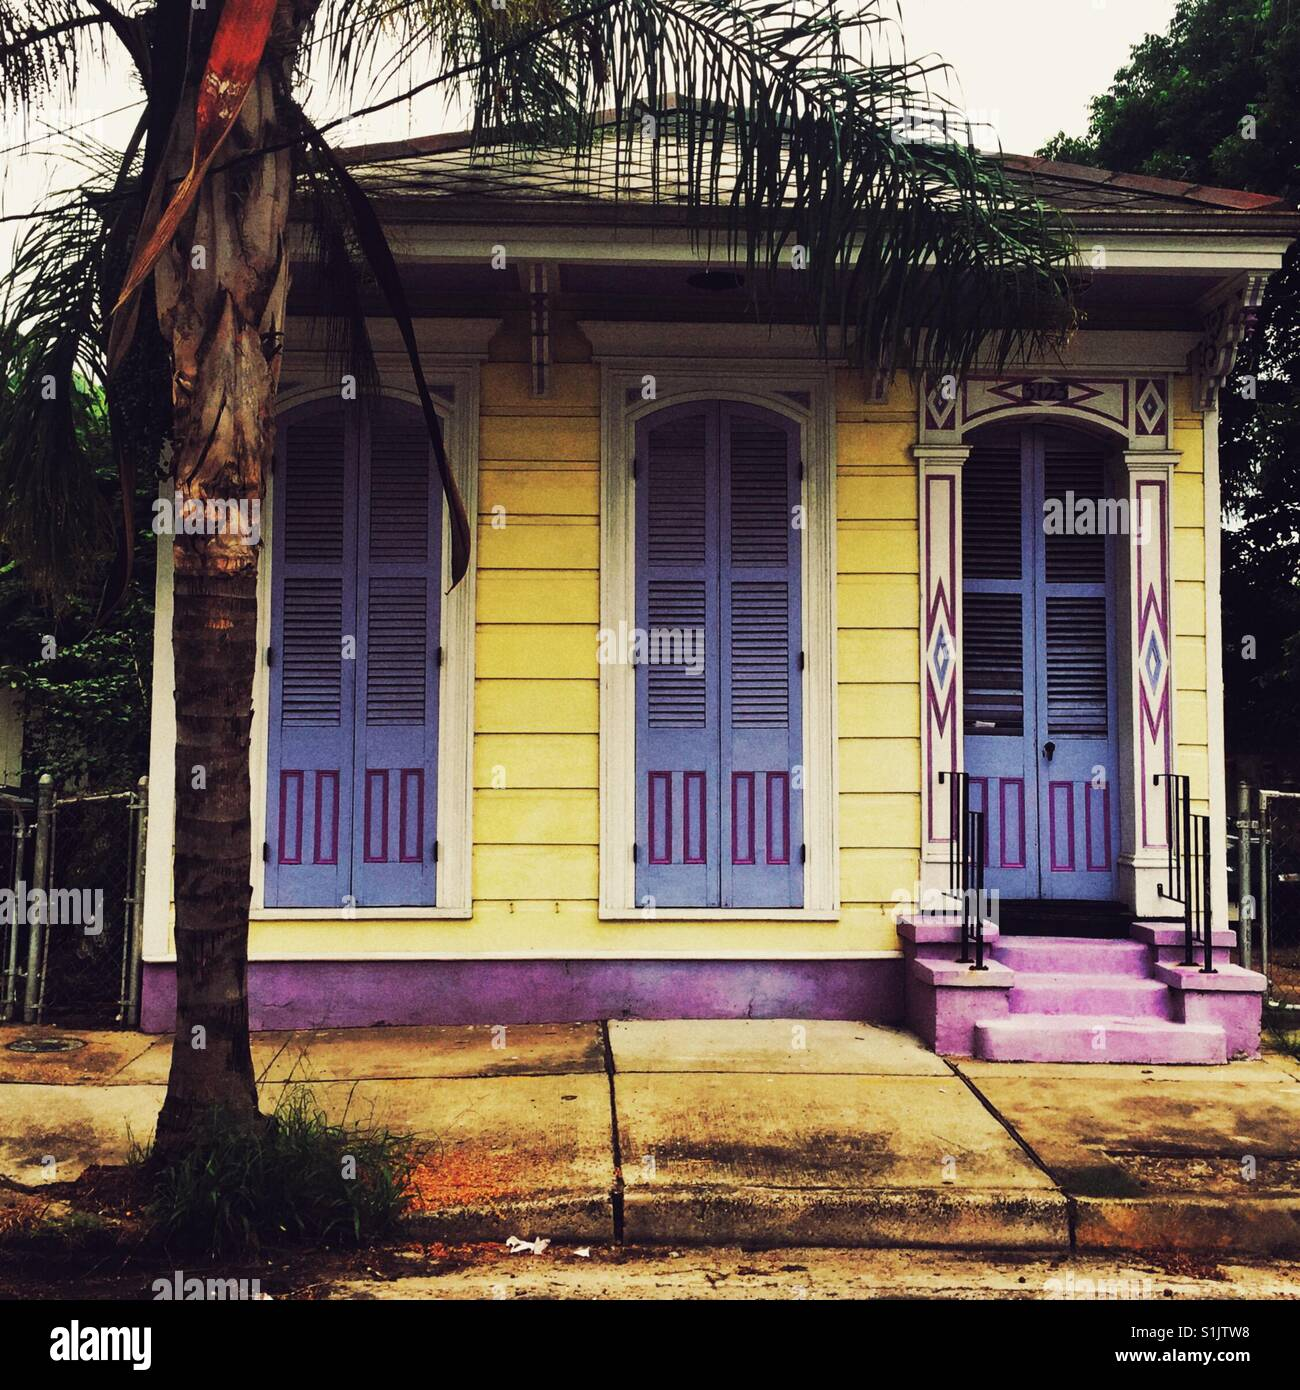 Yellow house with purple shades in New Orleans - Stock Image